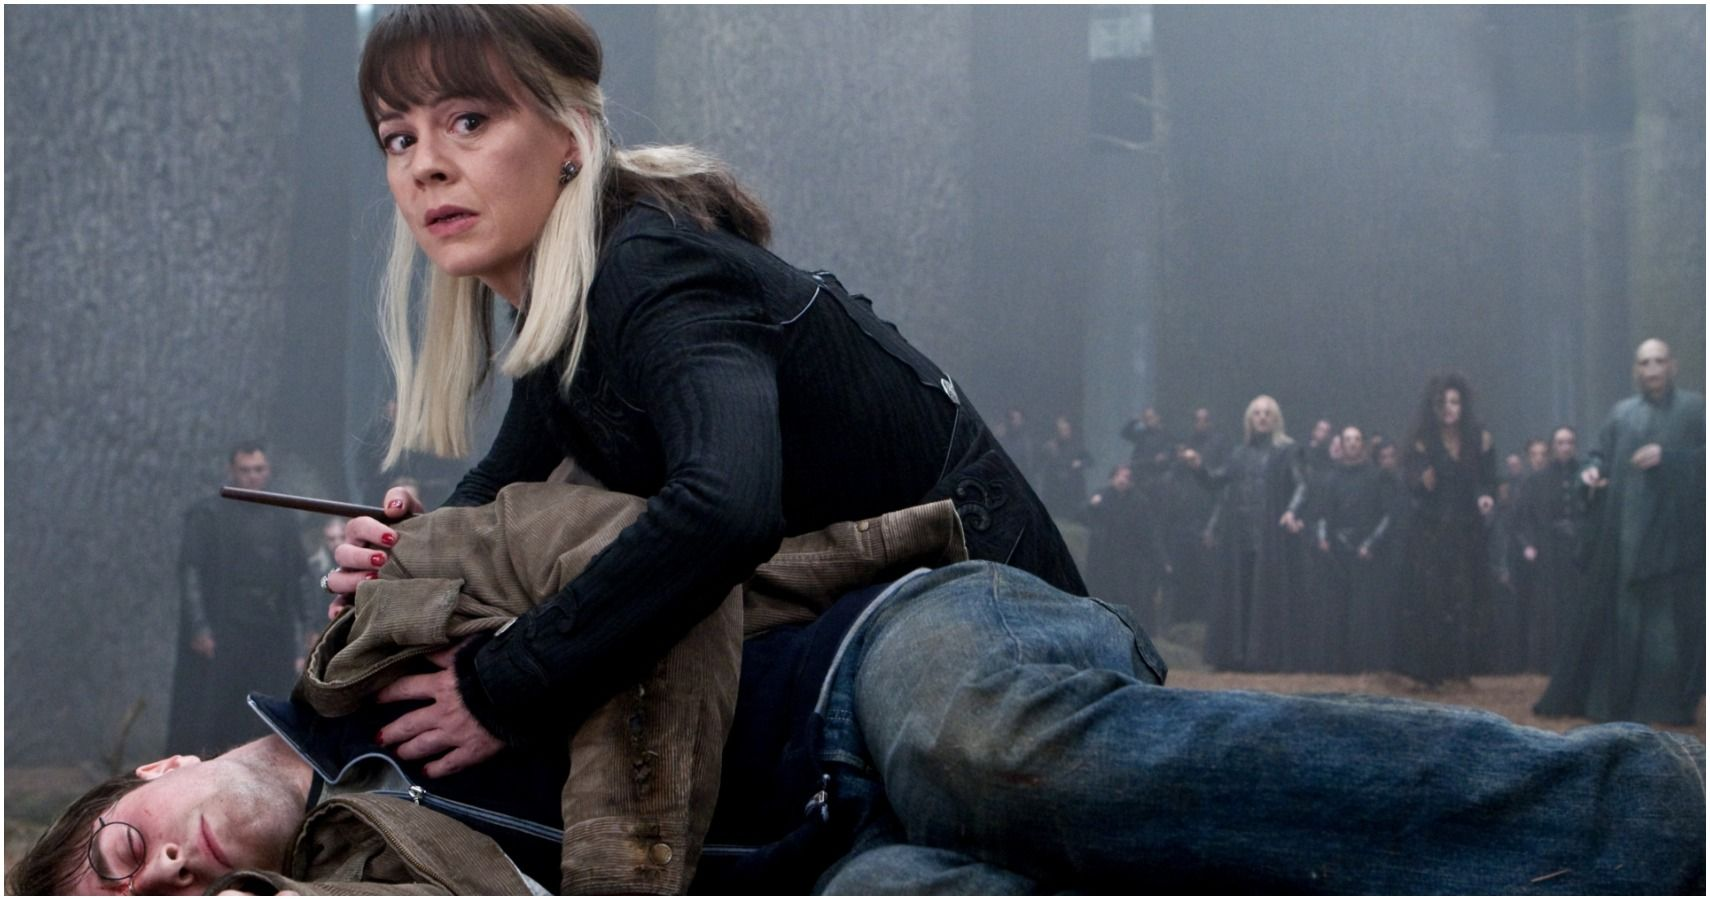 Harry Potter: 10 Things You Never Knew About Narcissa Malfoy